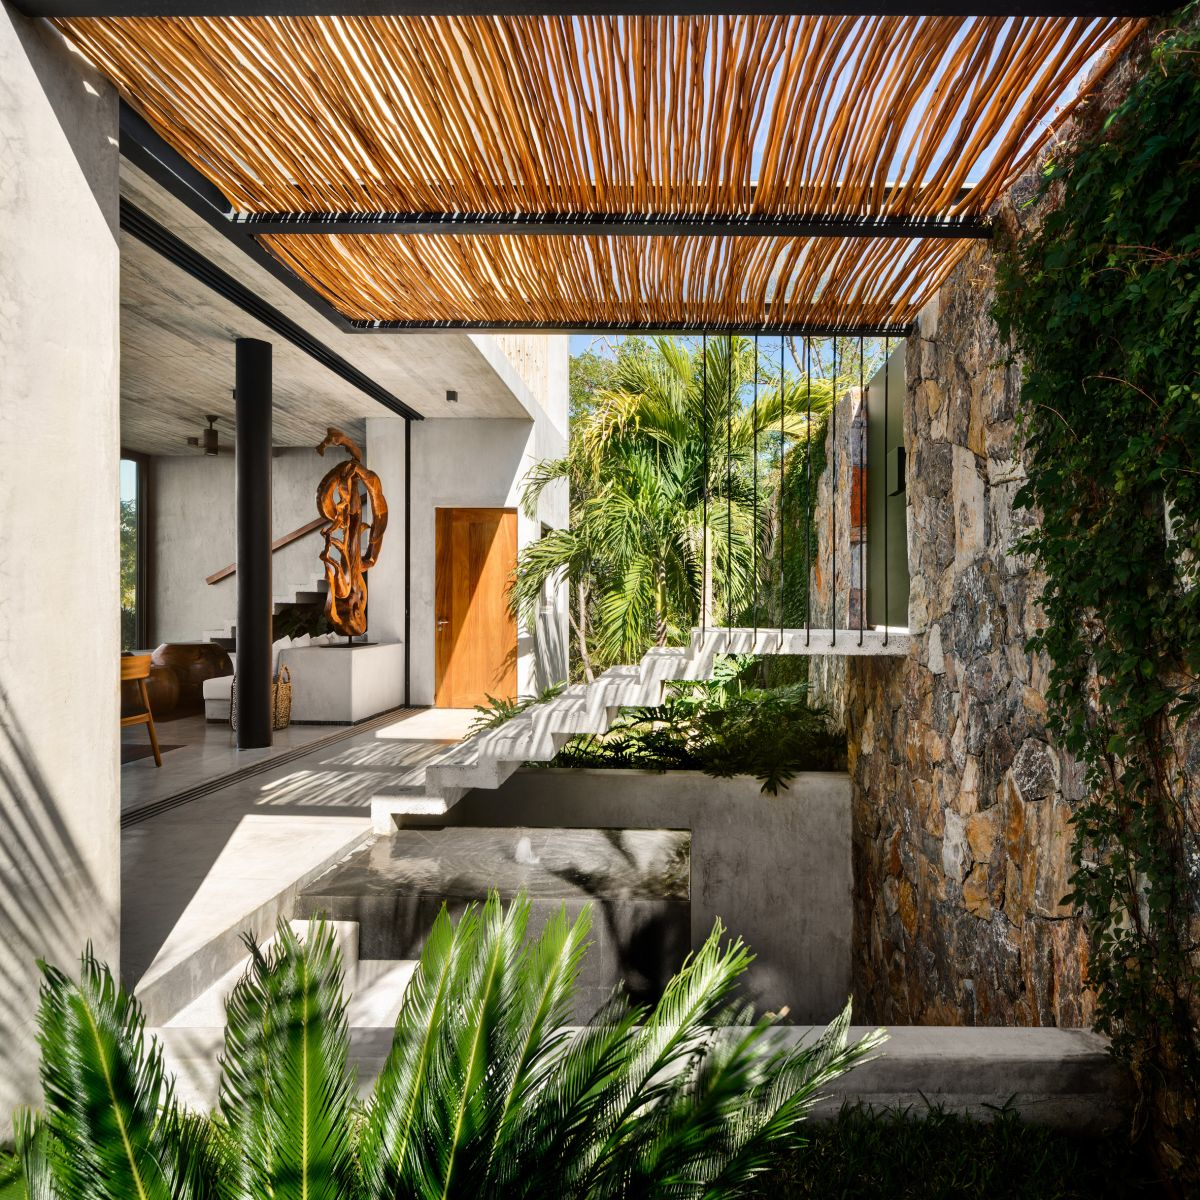 1564568474 200 6 creative ways to use bamboo in architecture and interior design - 6 Creative Ways To Use Bamboo In Architecture And Interior Design